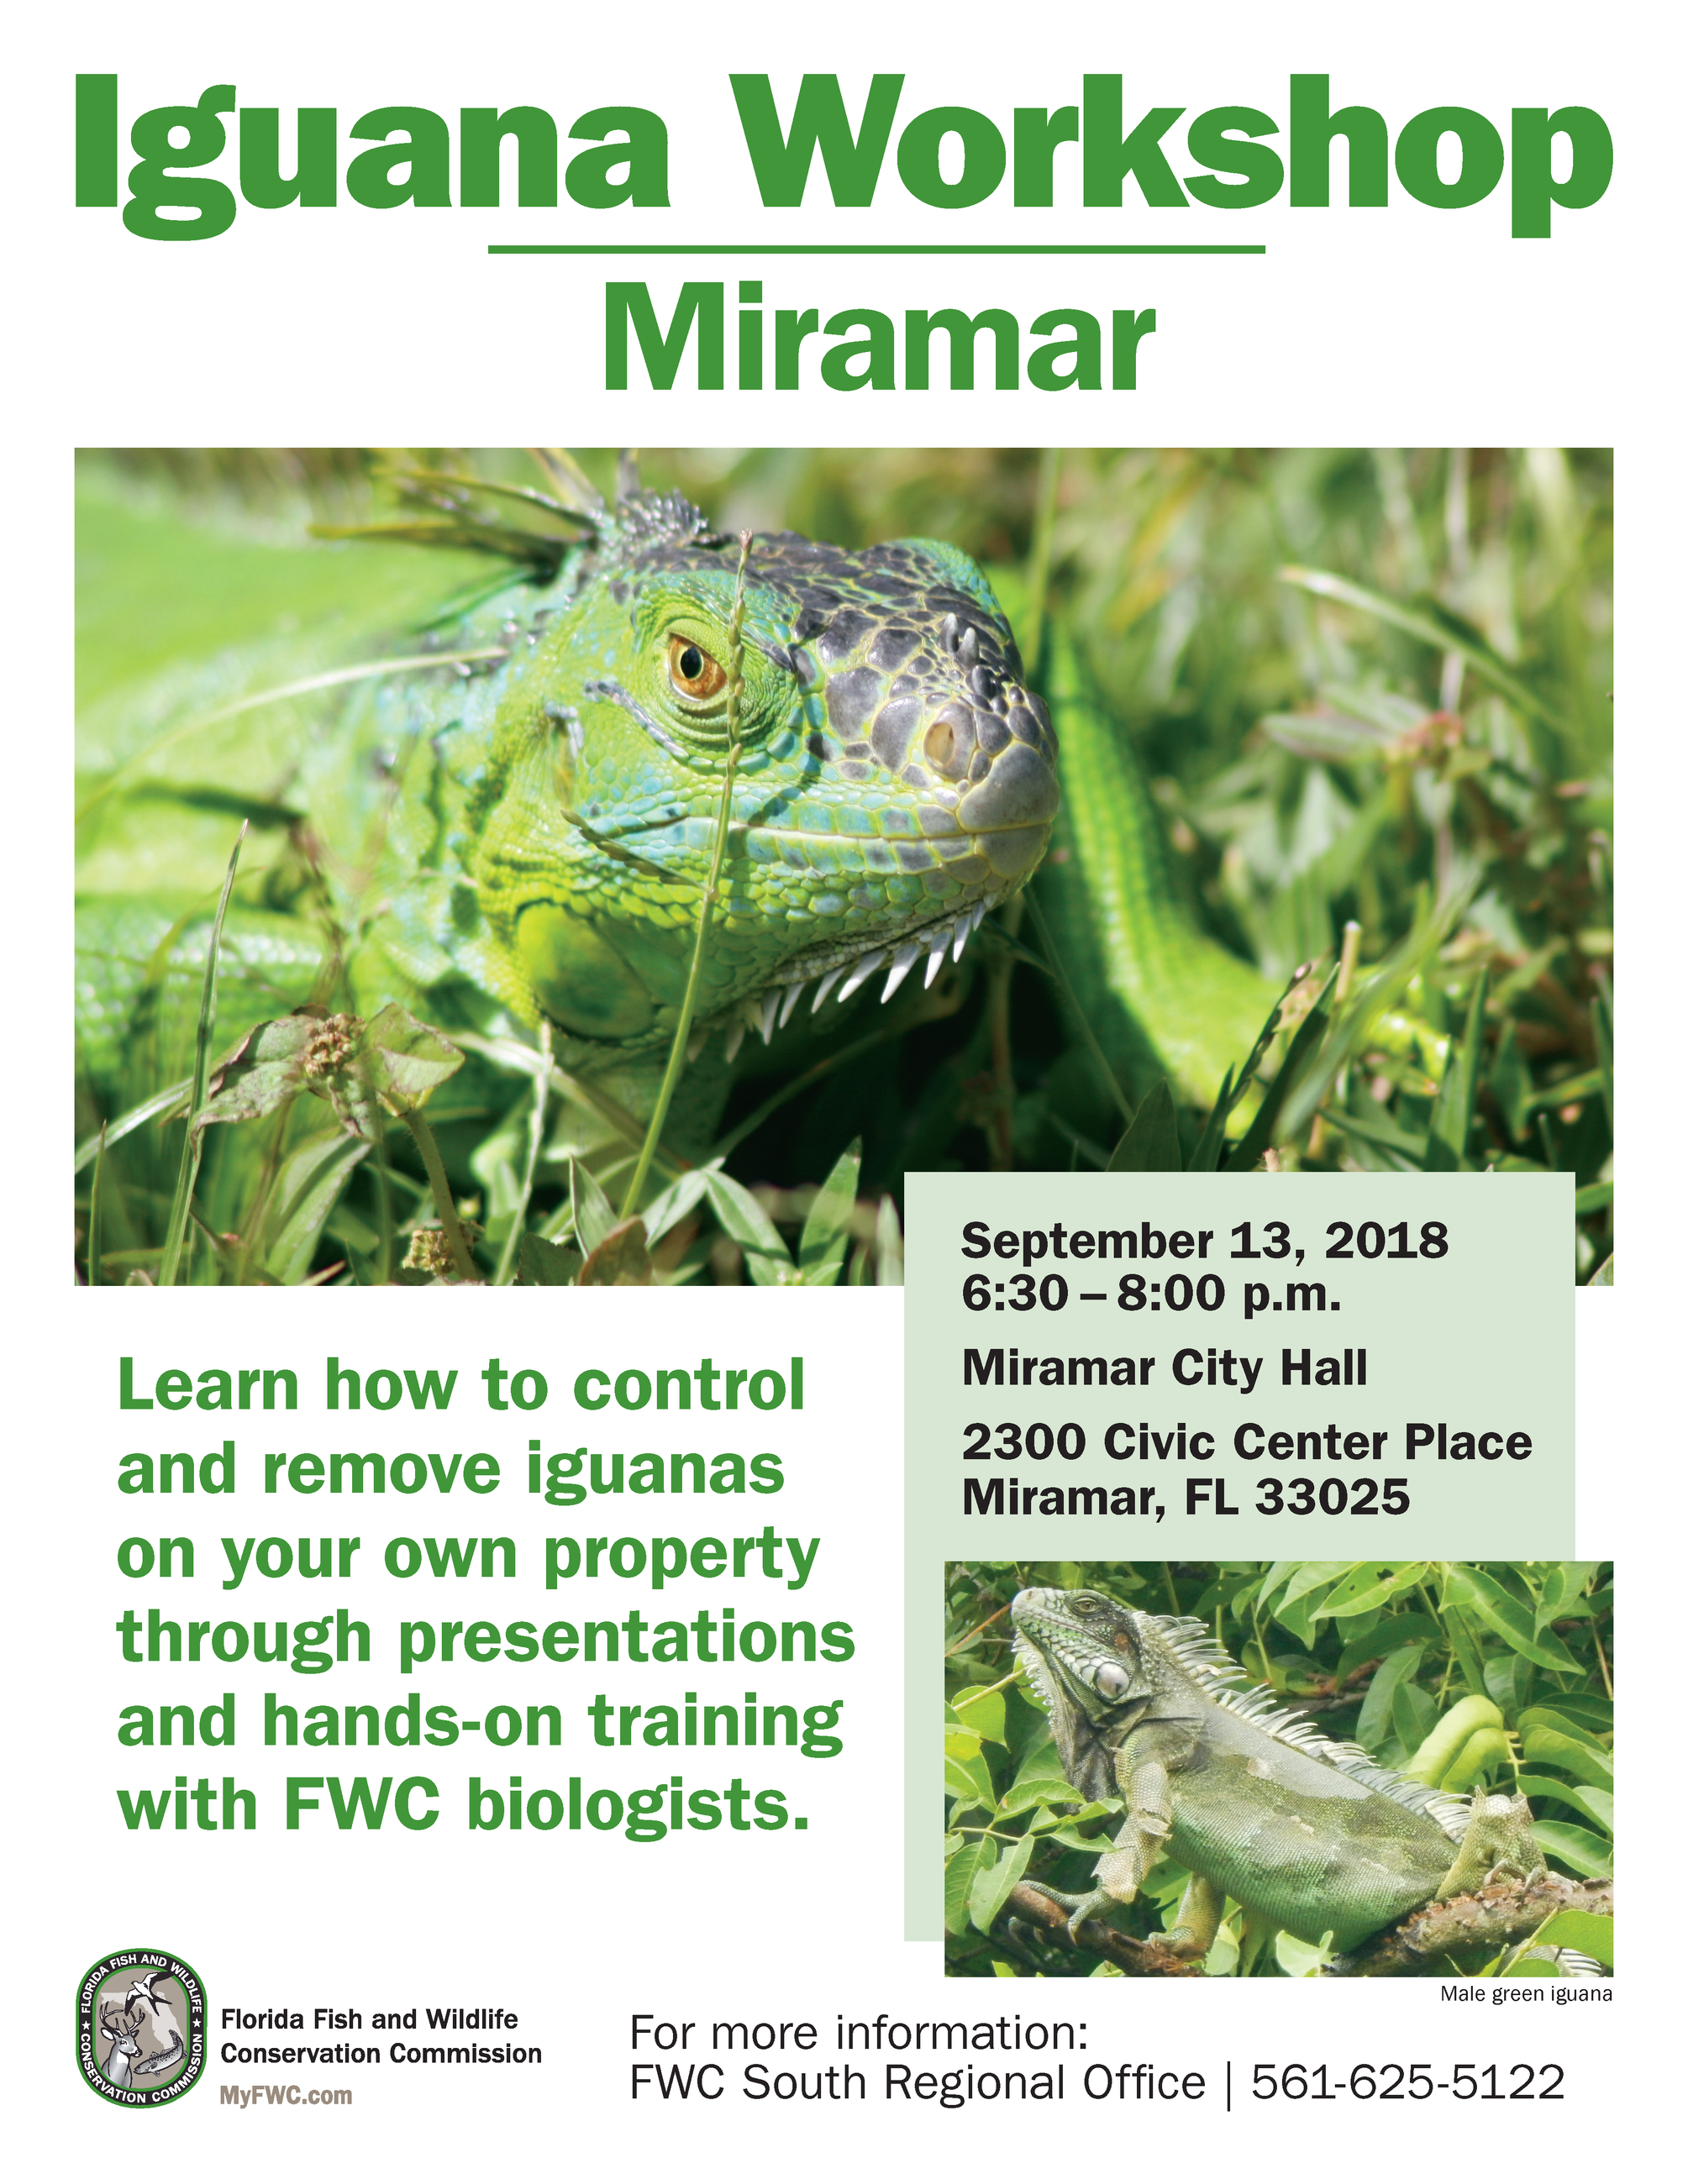 Iguana_Workshop_Flyer_Miramar32